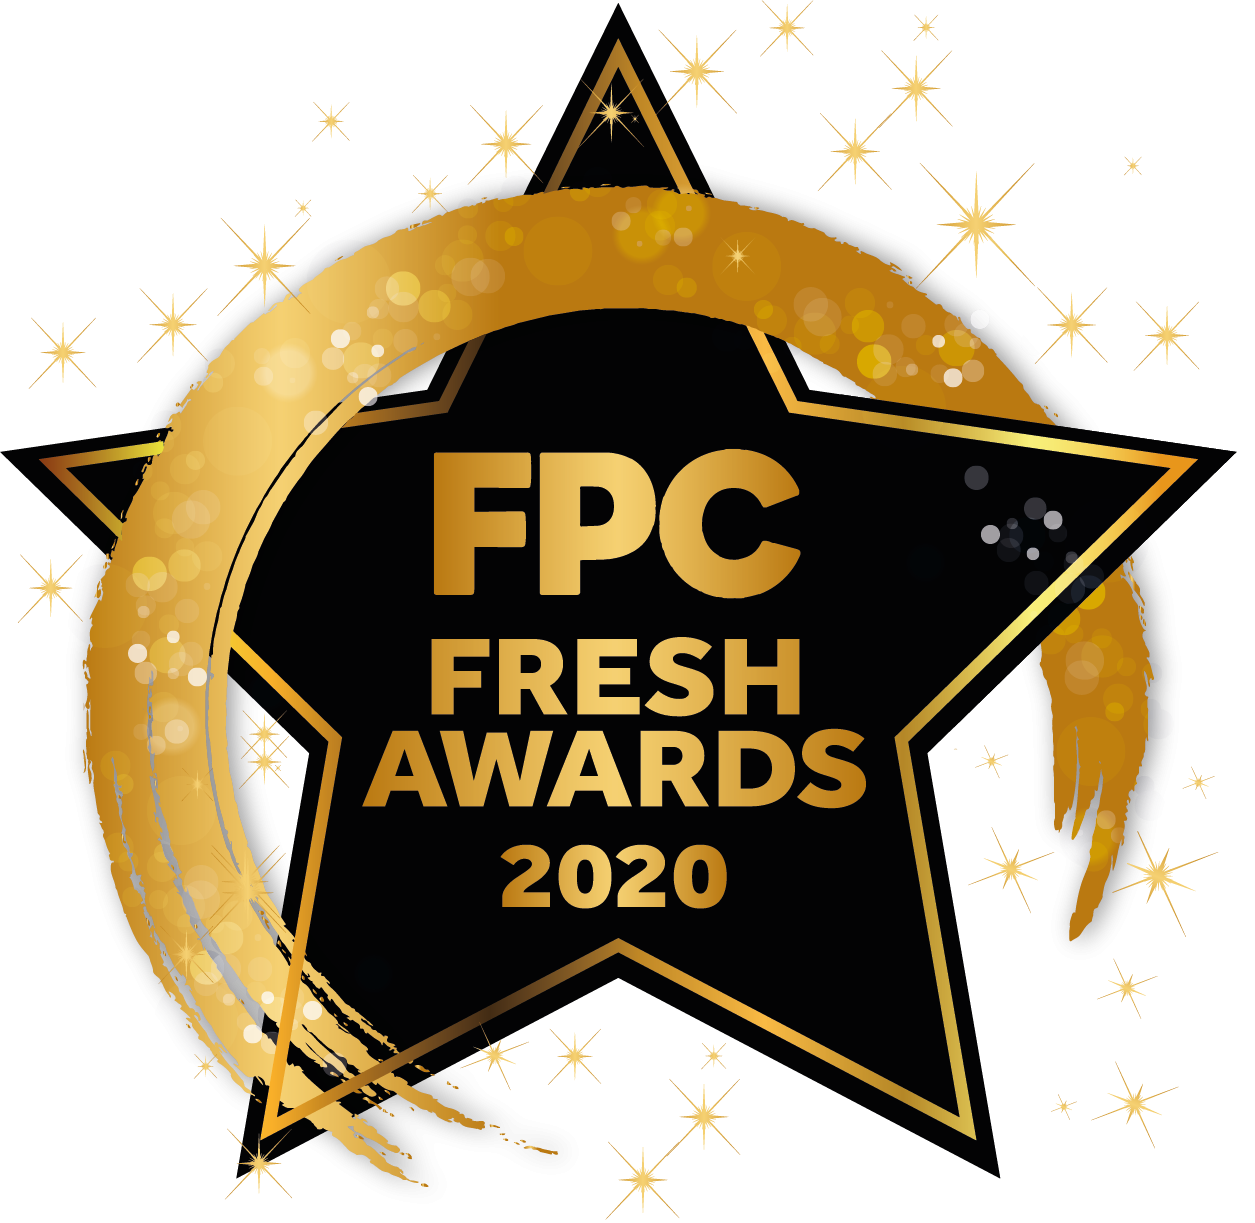 FPC Fresh Awards 2020